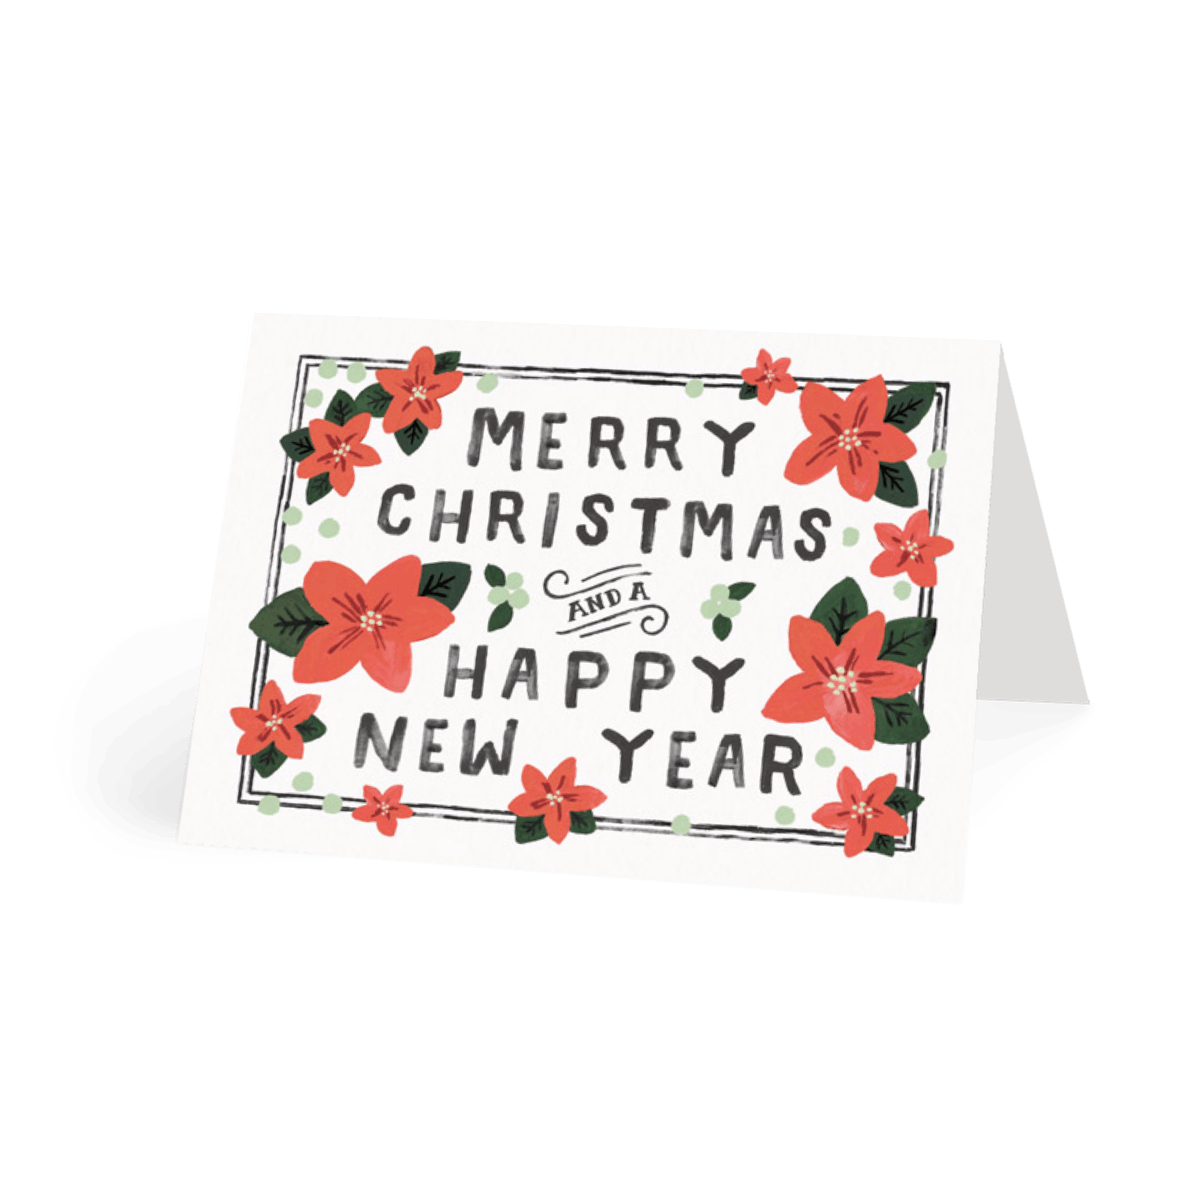 Https%3a%2f%2fwww.papier.com%2fproduct image%2f10494%2f14%2fchristmas poinsettia 2675 front 1472224032.png?ixlib=rb 1.1